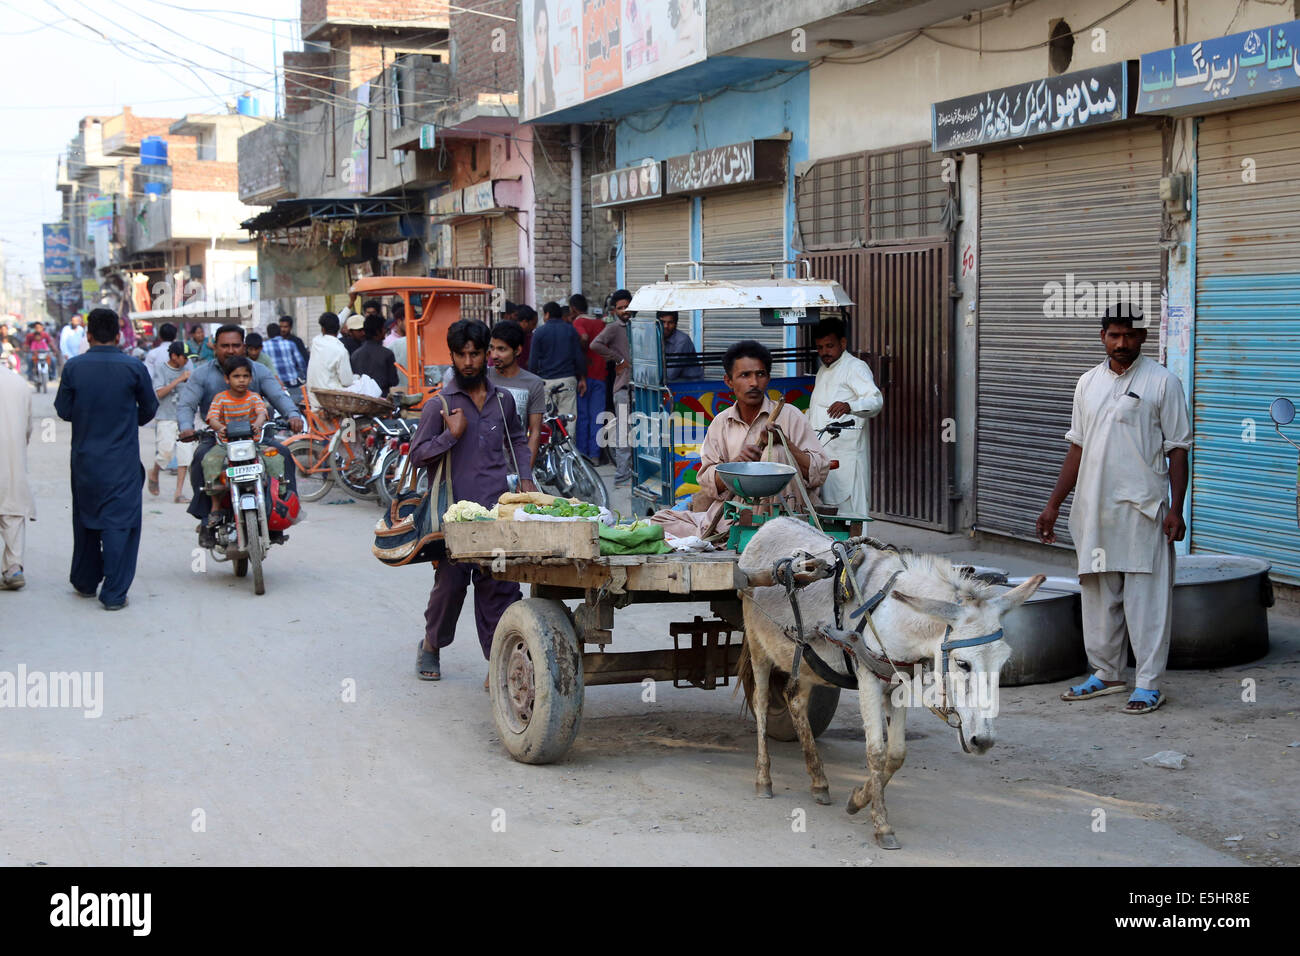 Street scene in the Youhanabad Colony, Lahore, Pakistan - Stock Image